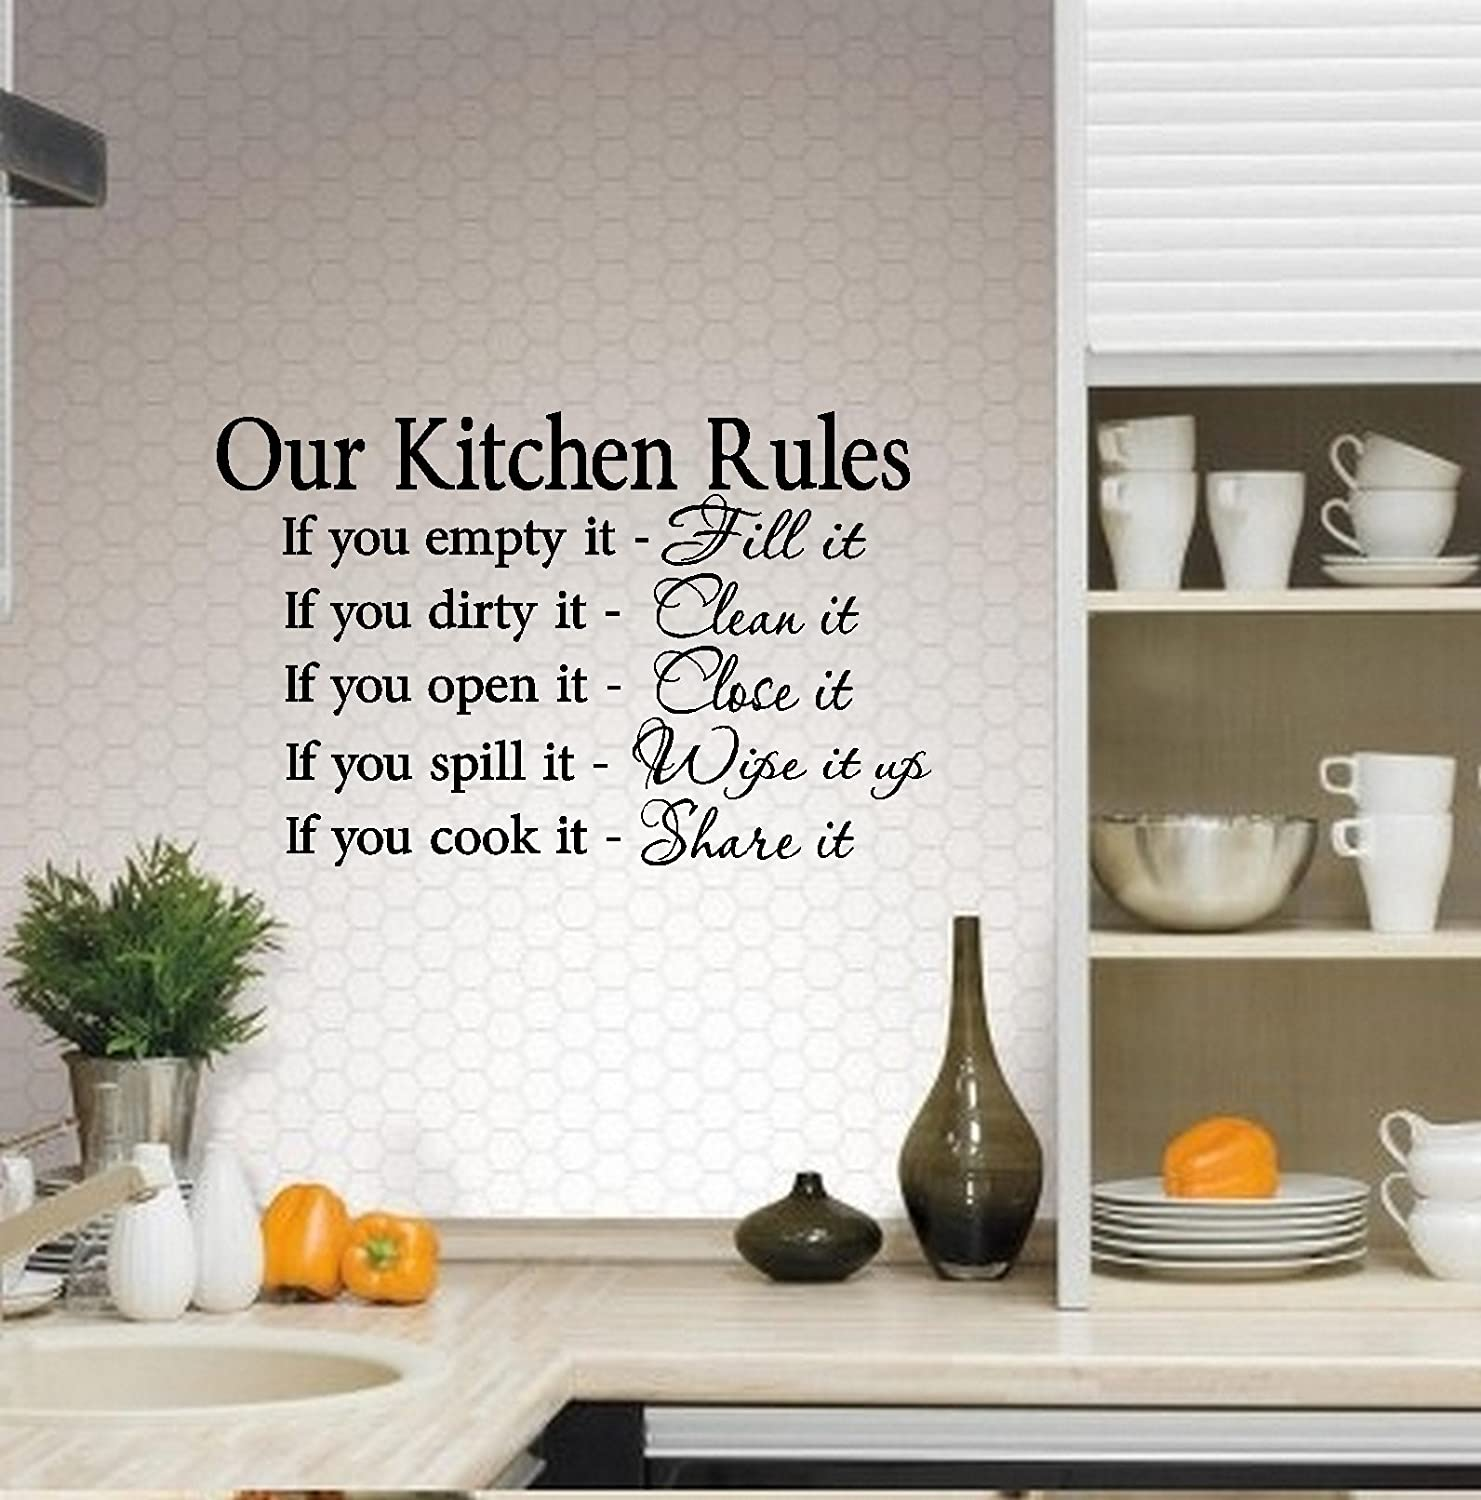 "Amazon OUR KITCHEN RULES WALL DECAL 13"" X 20 5"" Home & Kitchen"